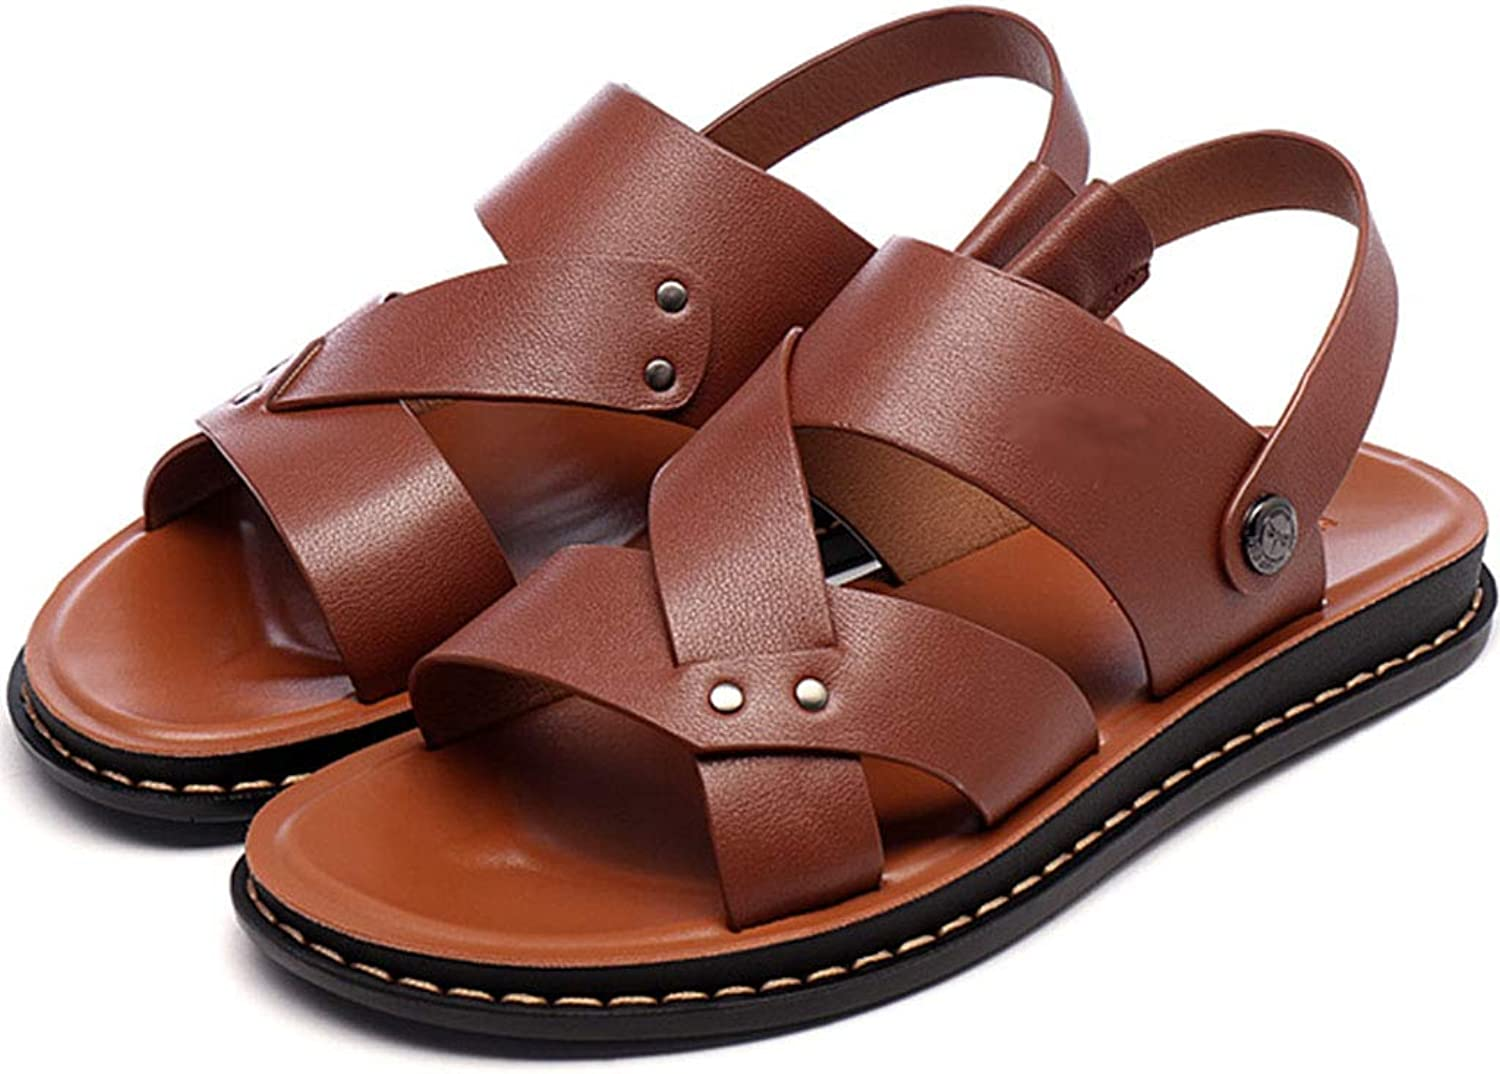 Men Summer Sandals Leather Outdoor Sports Hiking Trekking Sandals Fisherman Beach shoes Open Toe Casual Walking shoes Antiskid Flat Slides Sandals,Brown,40